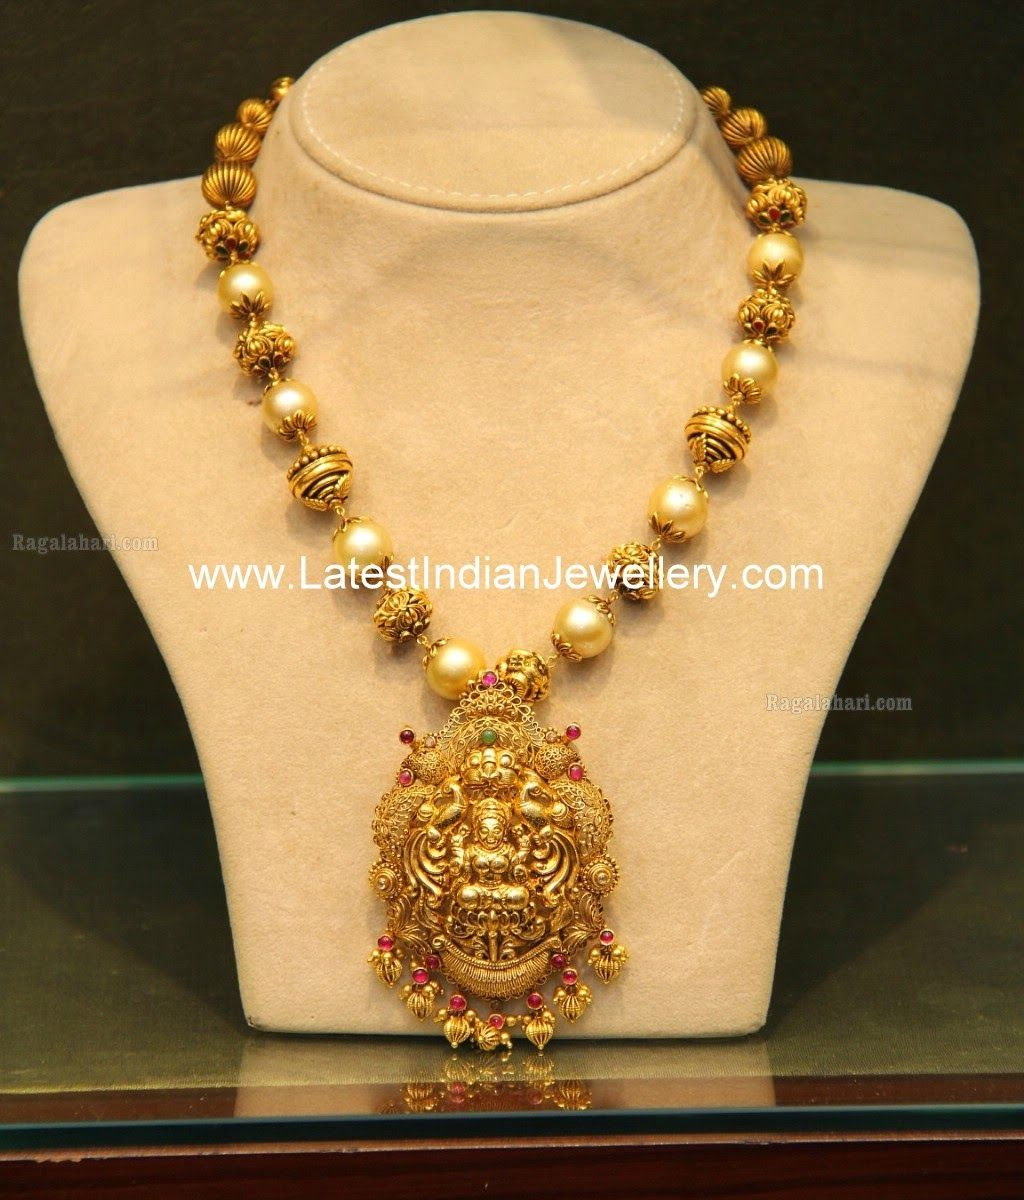 Indian Gold Jewellery Necklace Designs With Price: Malabar Gold Temple Jewellery With Pearls